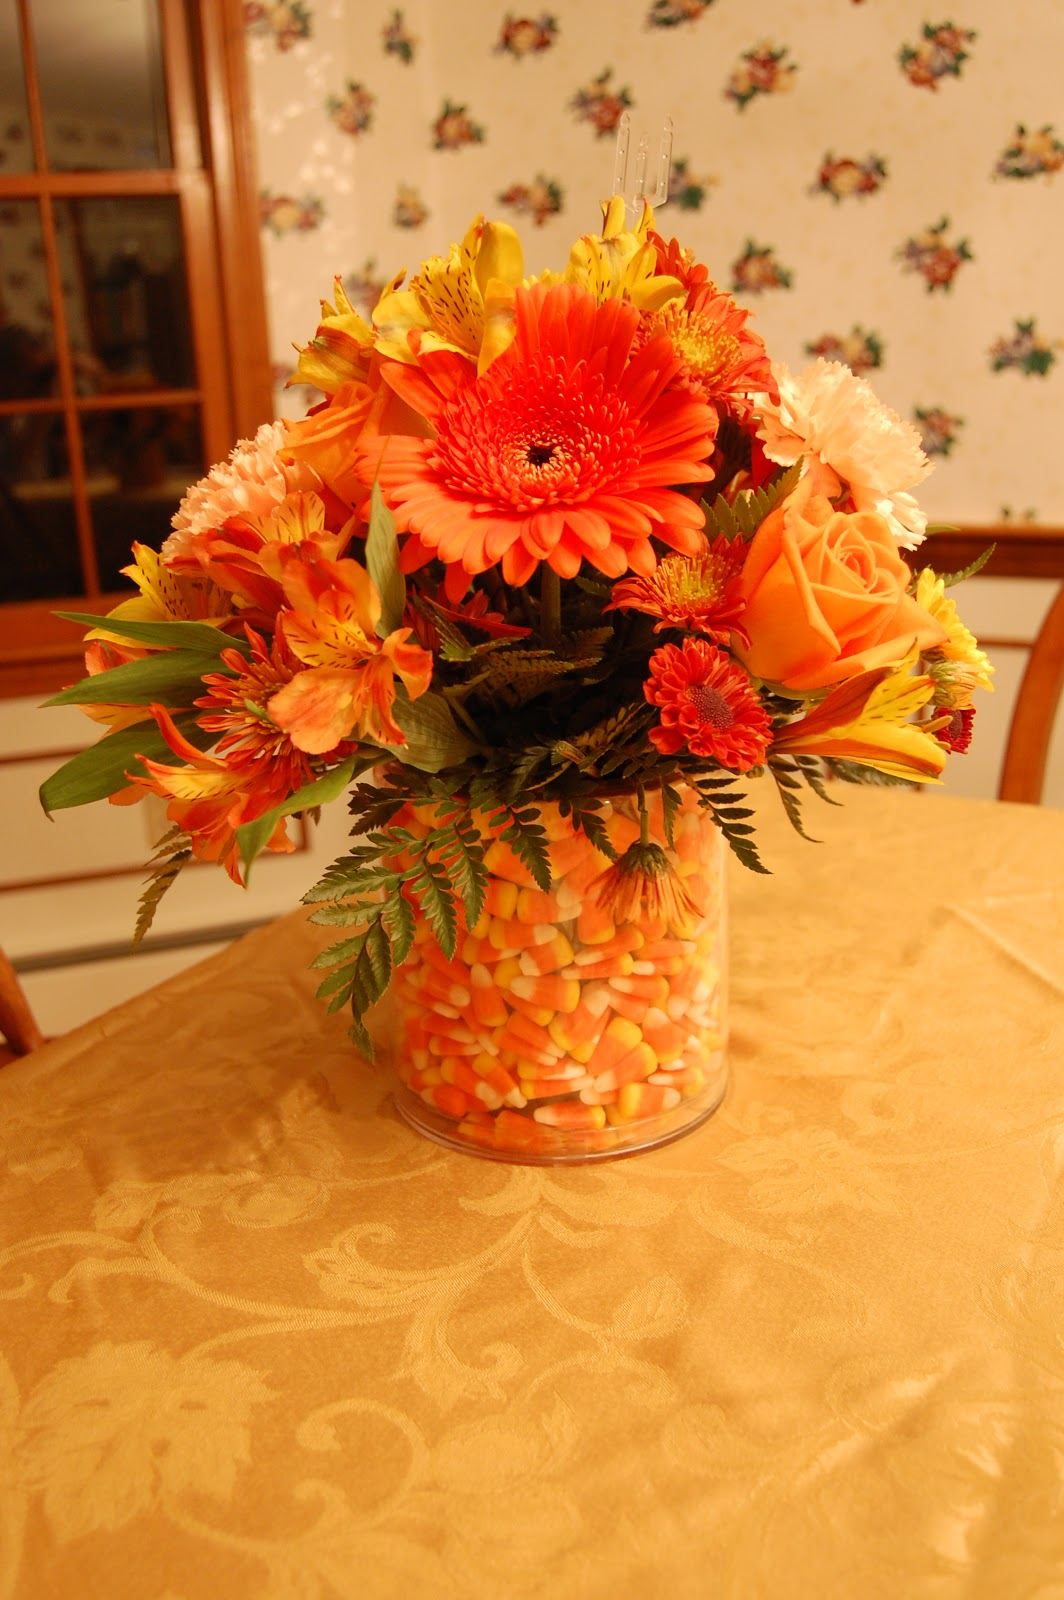 Steves 2 cents birthday flowers the flowers delivered to dolores for her birthday izmirmasajfo